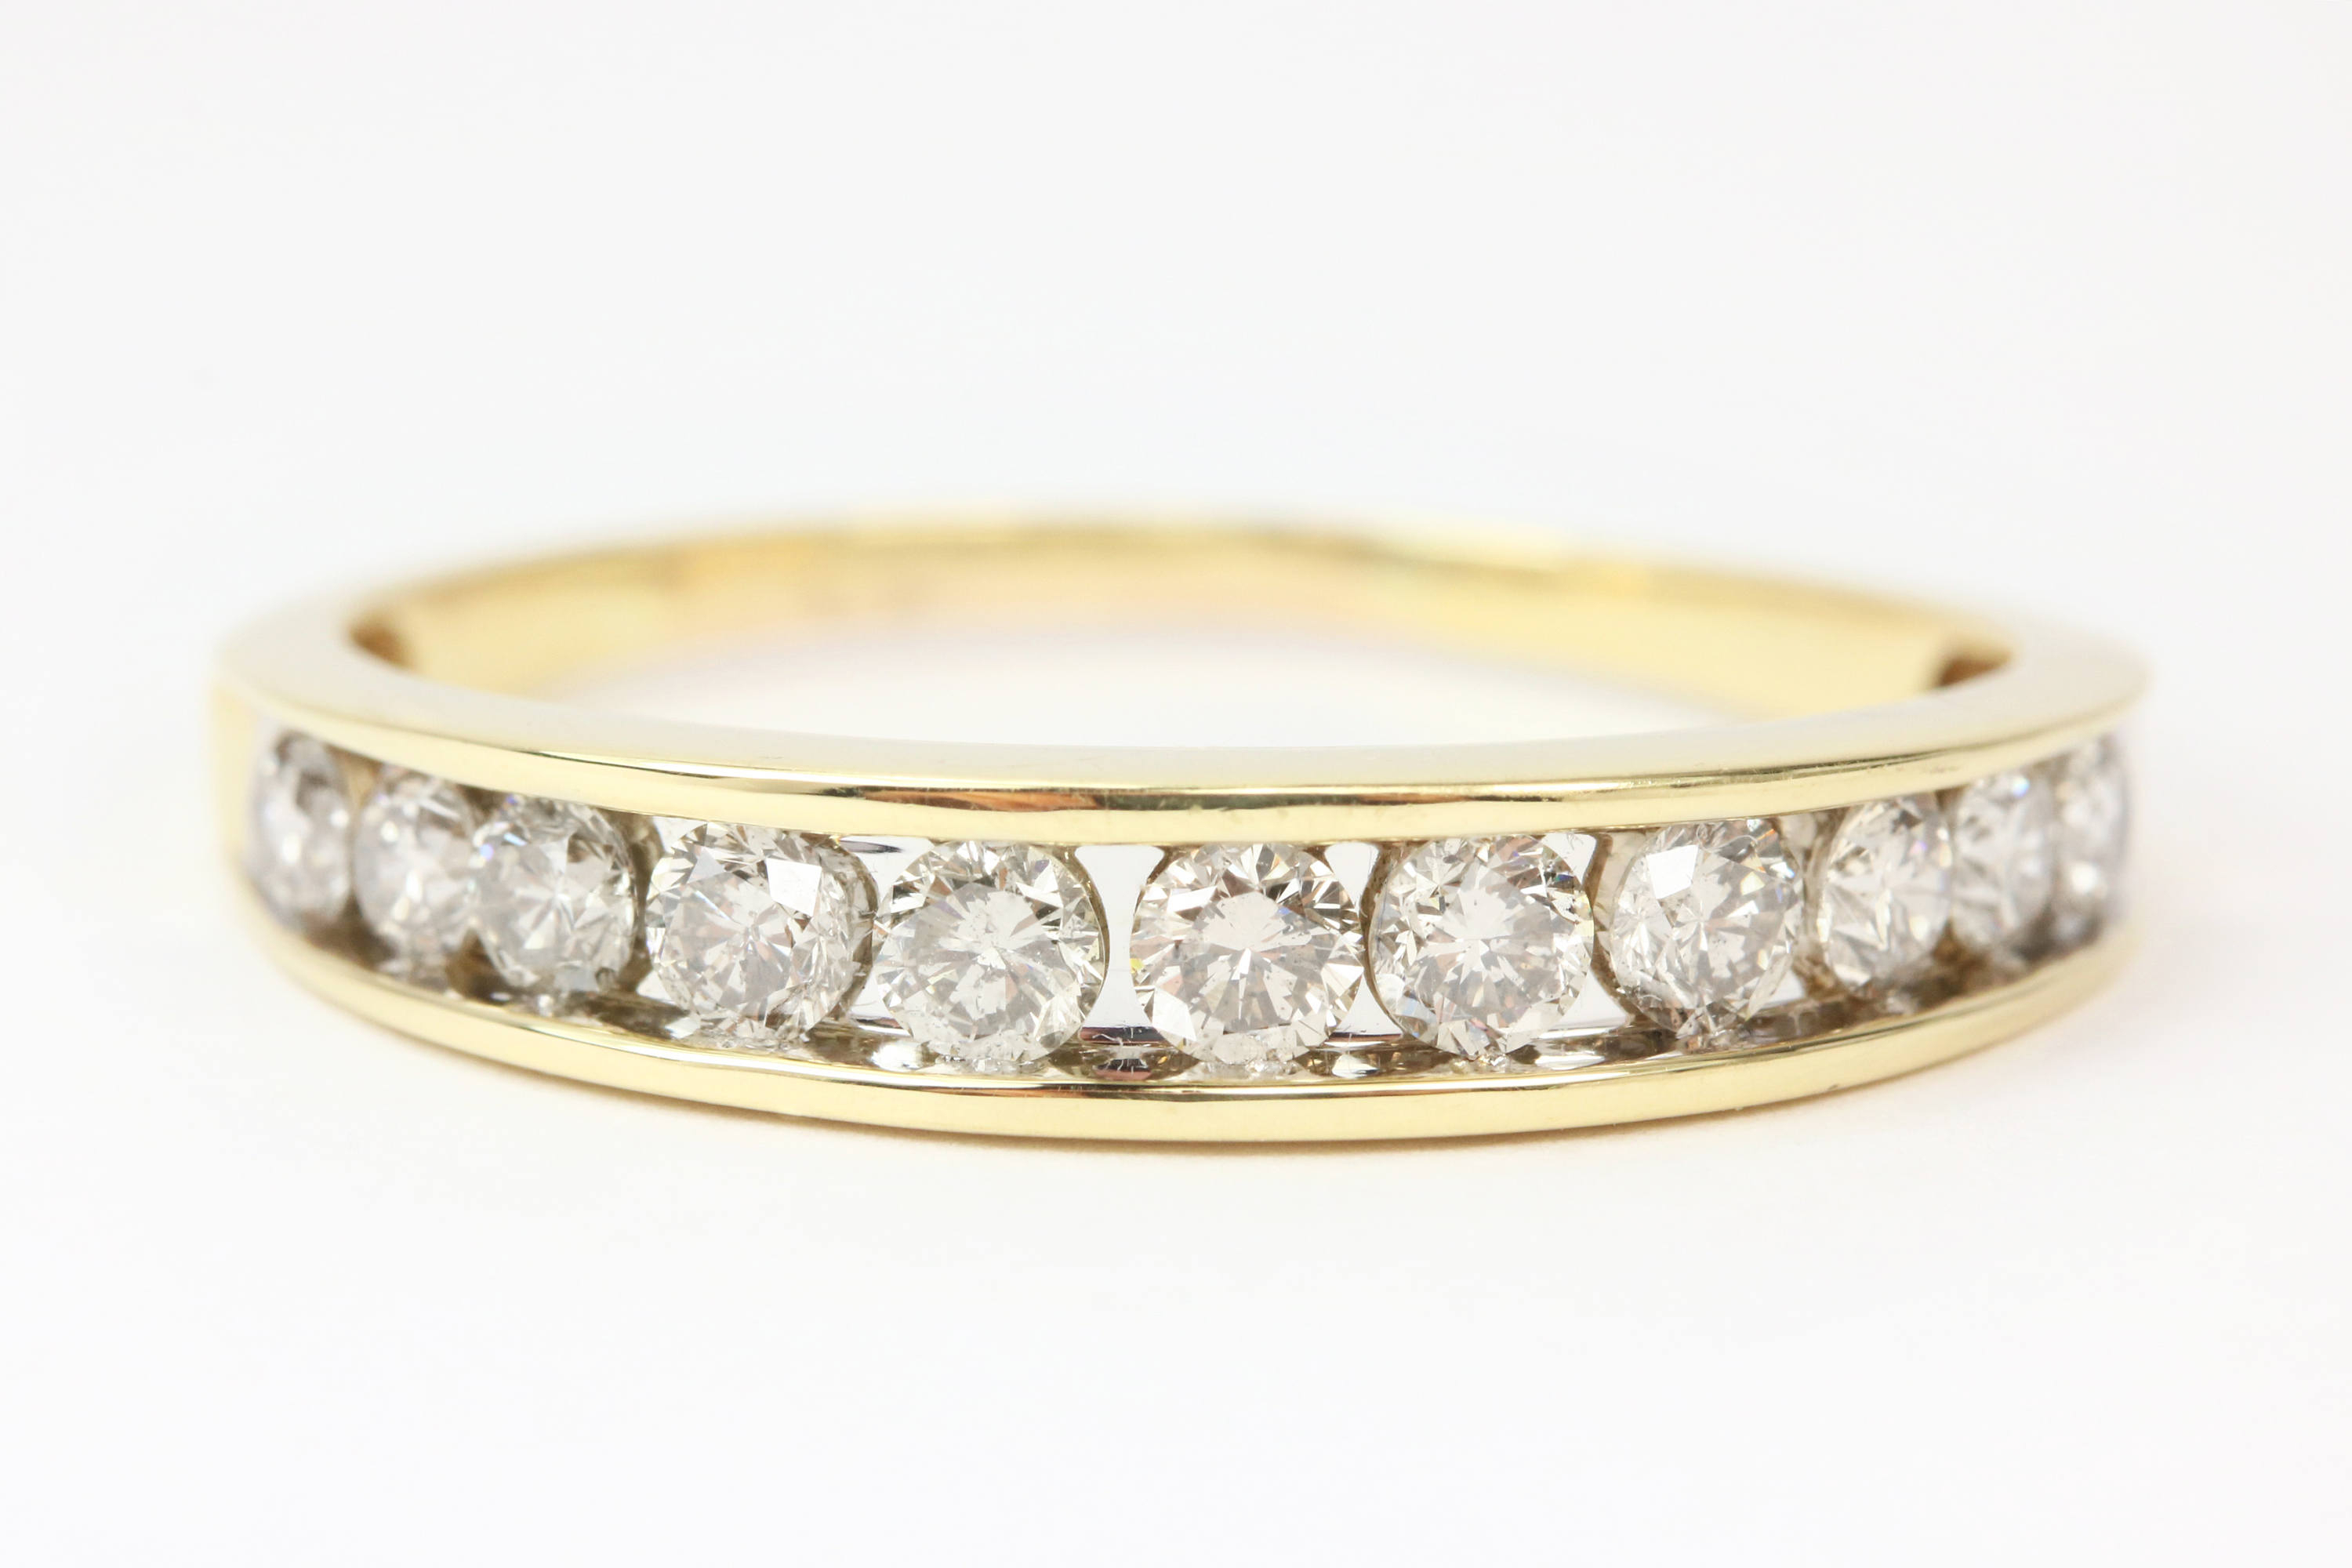 14K Champagne Diamond Mens Wedding Band Regarding 2020 Champagne Diamond Anniversary Bands In White Gold (View 2 of 25)